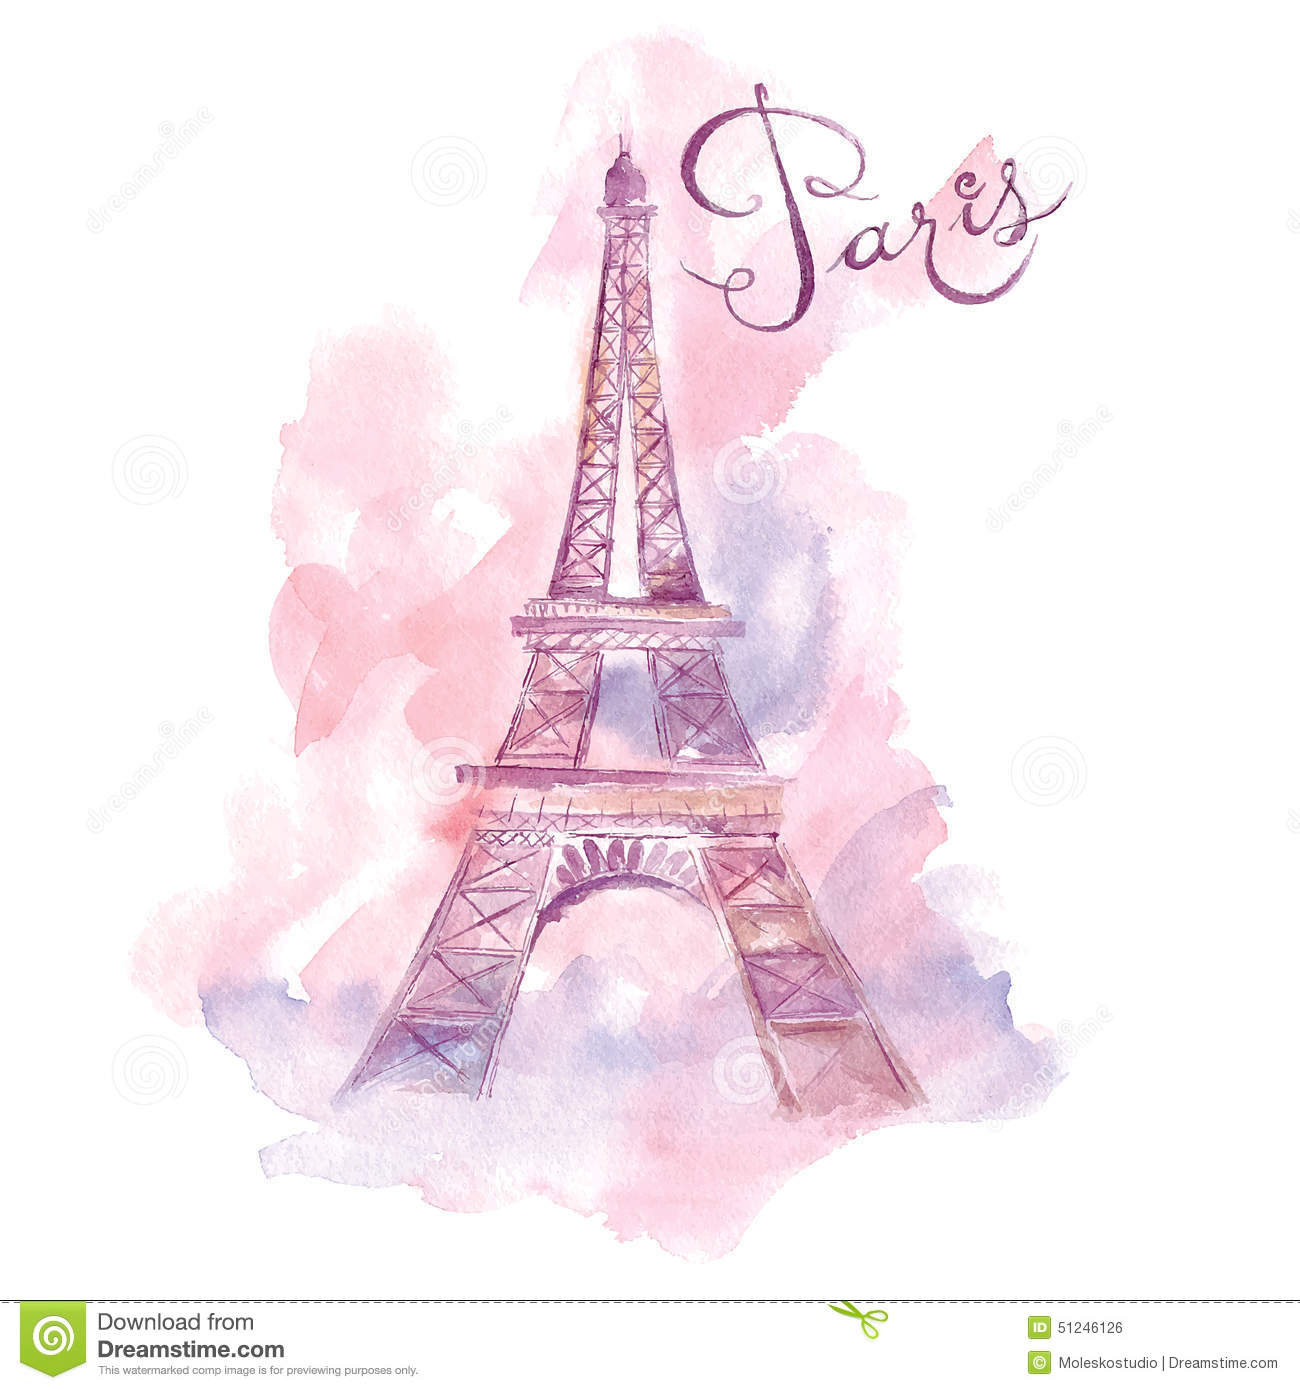 Eiffel Tower Wallpaper Stock Illustrations 1 403 Eiffel Tower Wallpaper Stock Illustrations Vectors Clipart Dreamstime